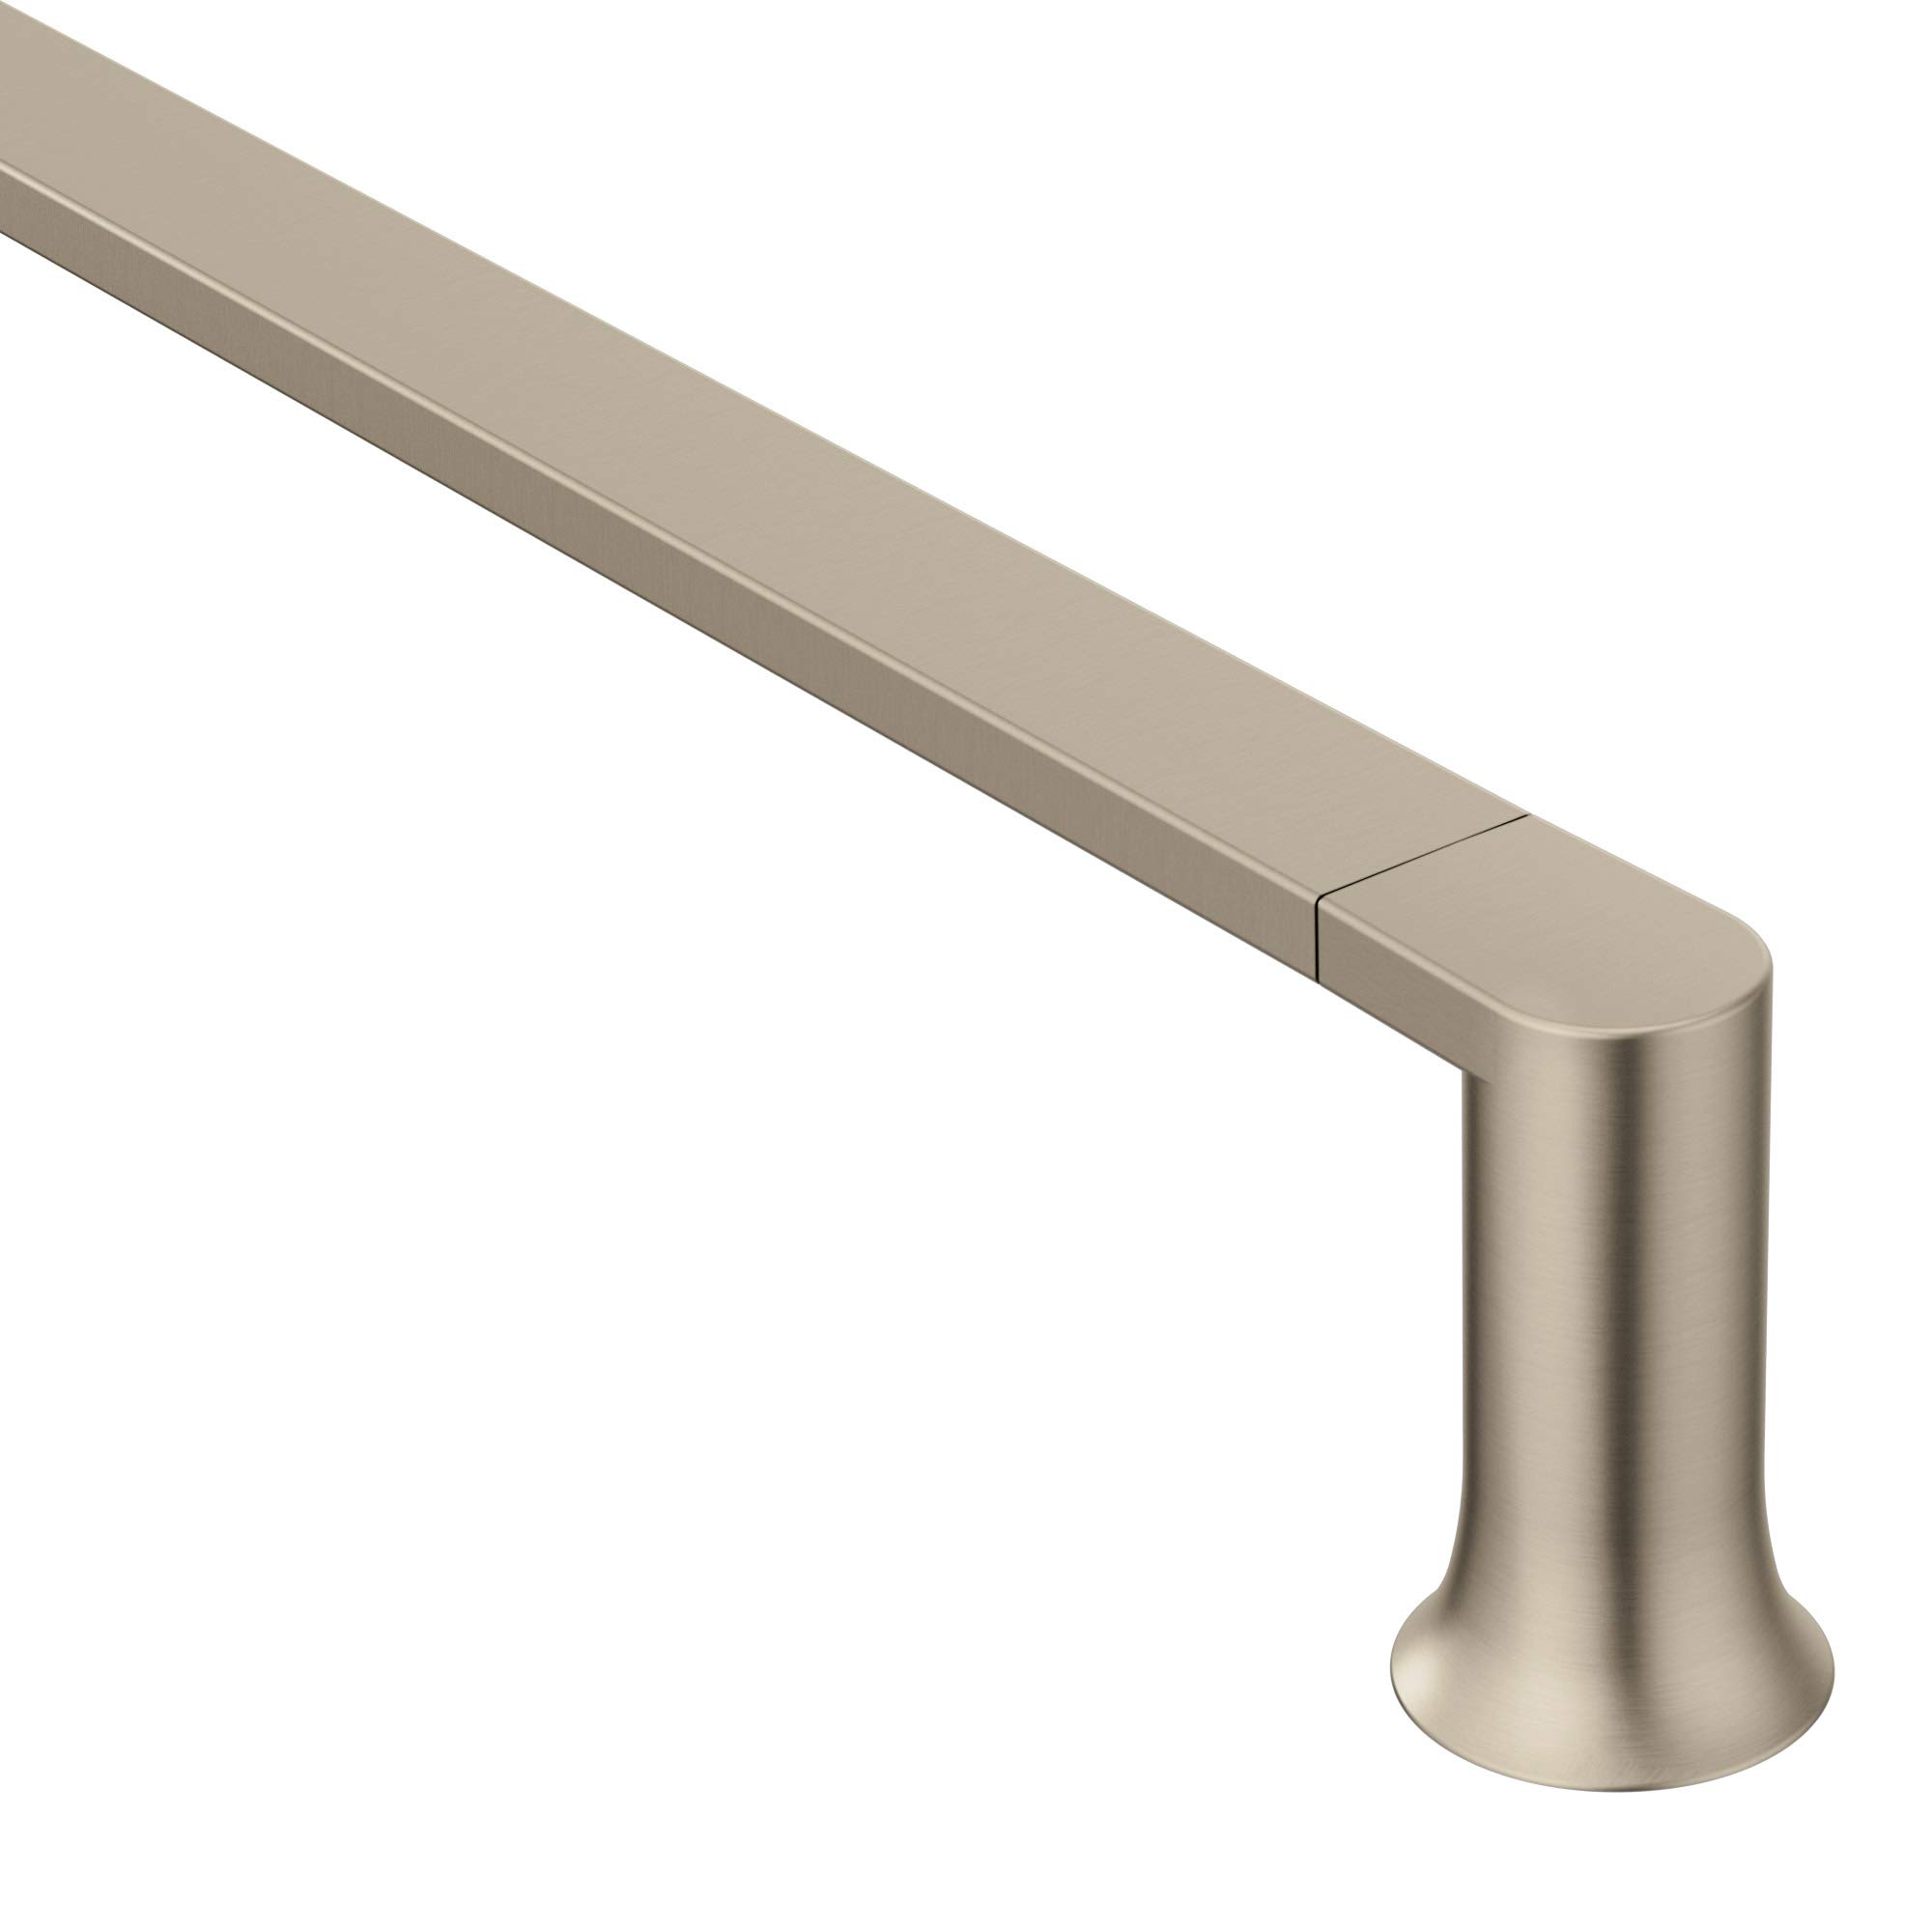 Moen BH3824BN Genta Modern 24-Inch Towel Bar, Brushed Nickel by Moen